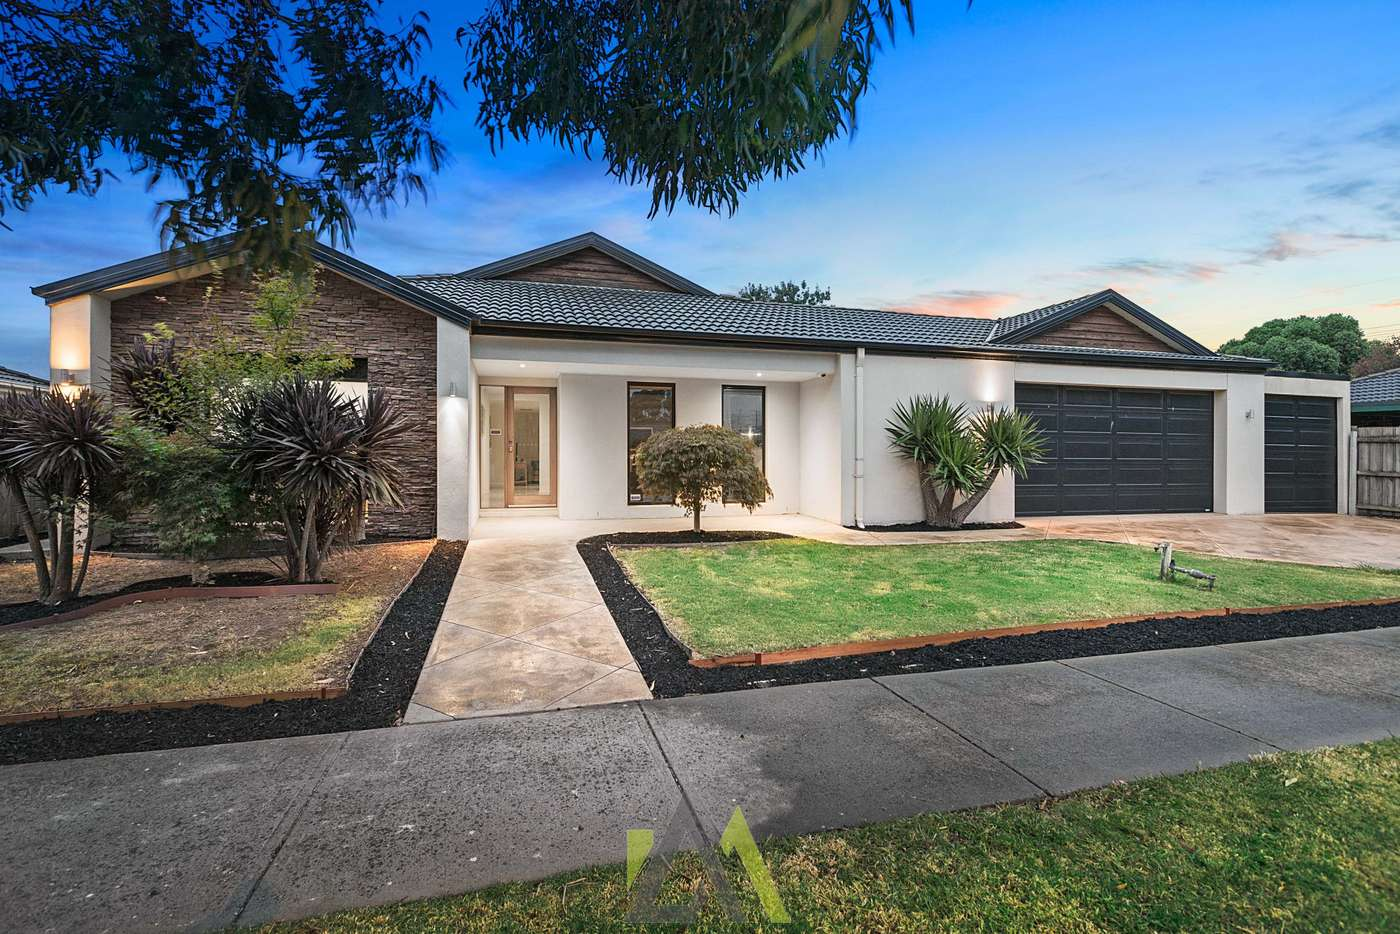 Main view of Homely house listing, 13 Cleopatra Drive, Cranbourne VIC 3977